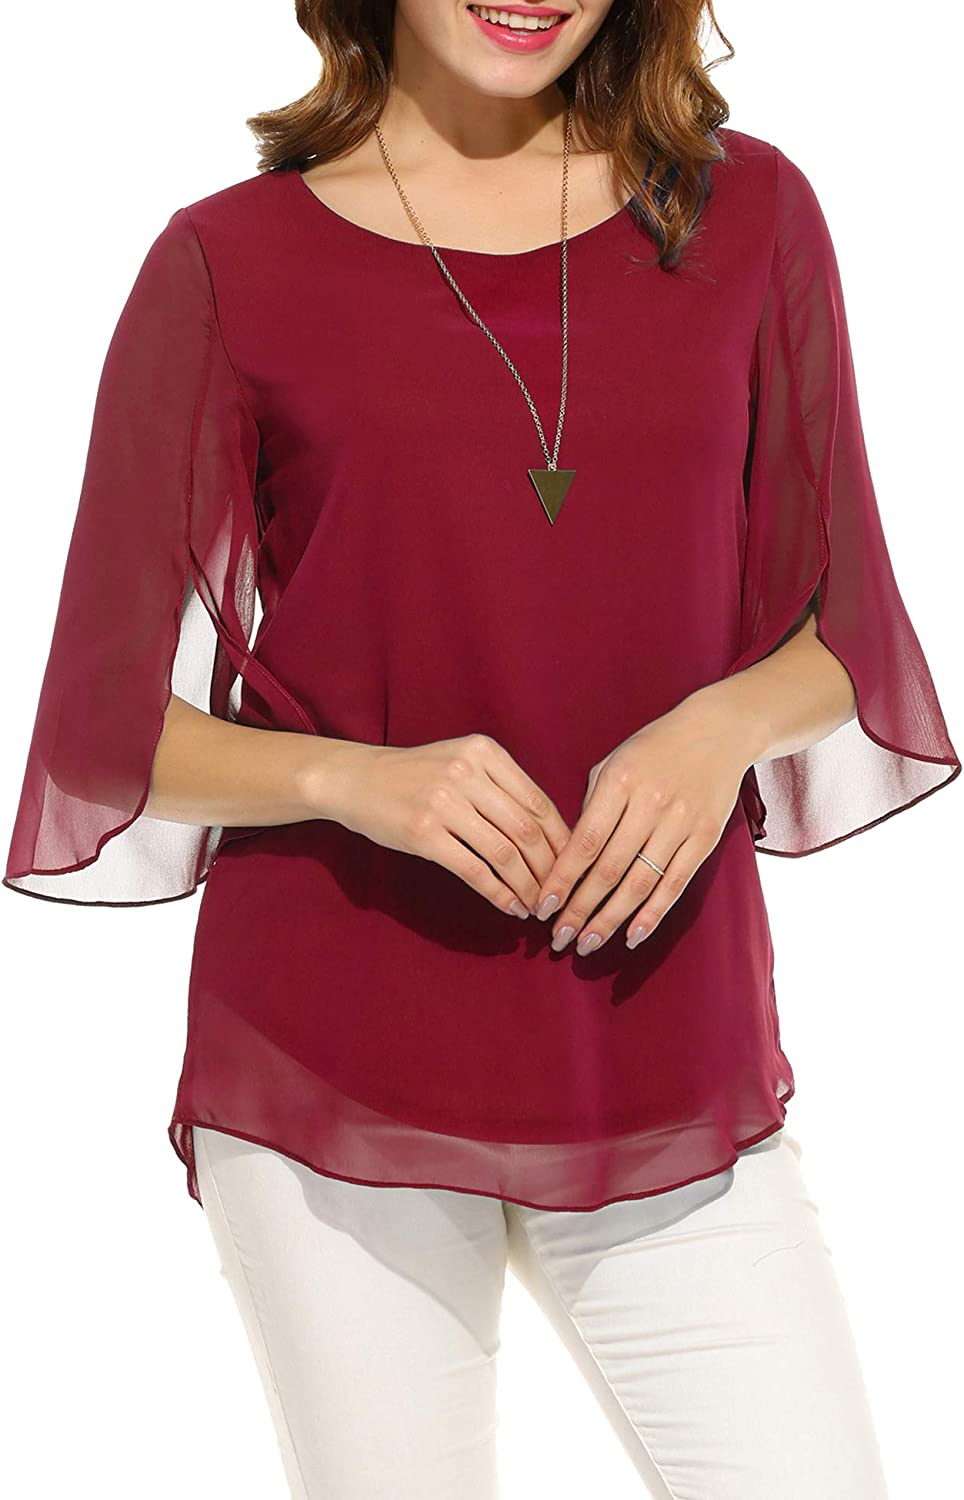 ACEVOG Womens Casual Scoop Neck Loose Top 3/4 Sleeve Chiffon Blouse Shirt Tops: Clothing